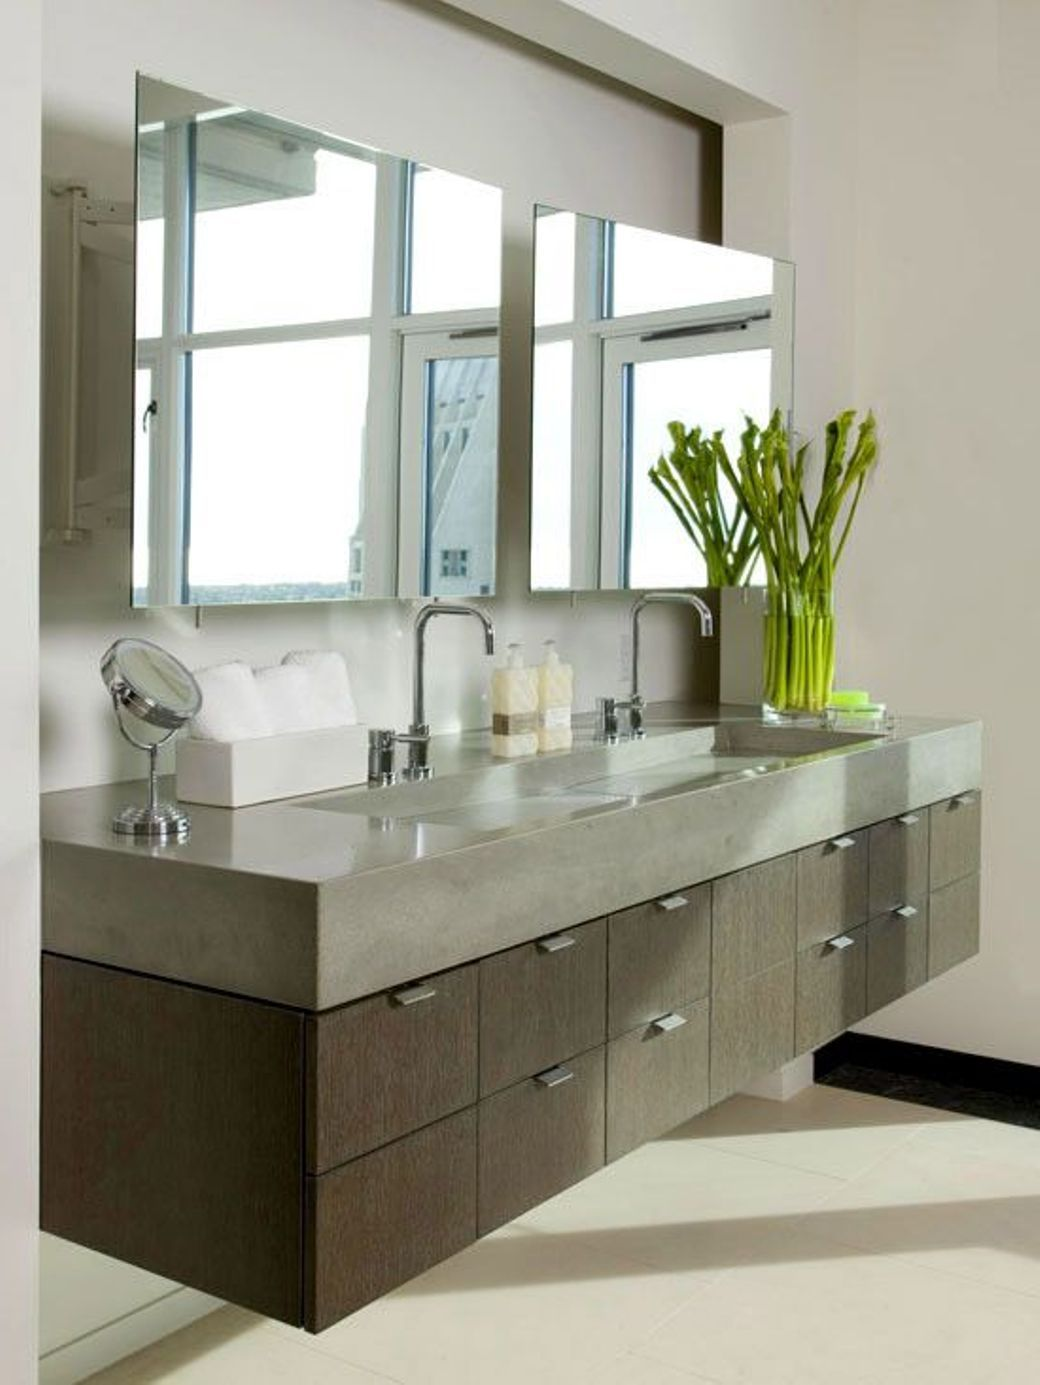 Modern Bathroom Vanities With Sinks bathroom , the modern bathroom vanity : floating modern bathroom